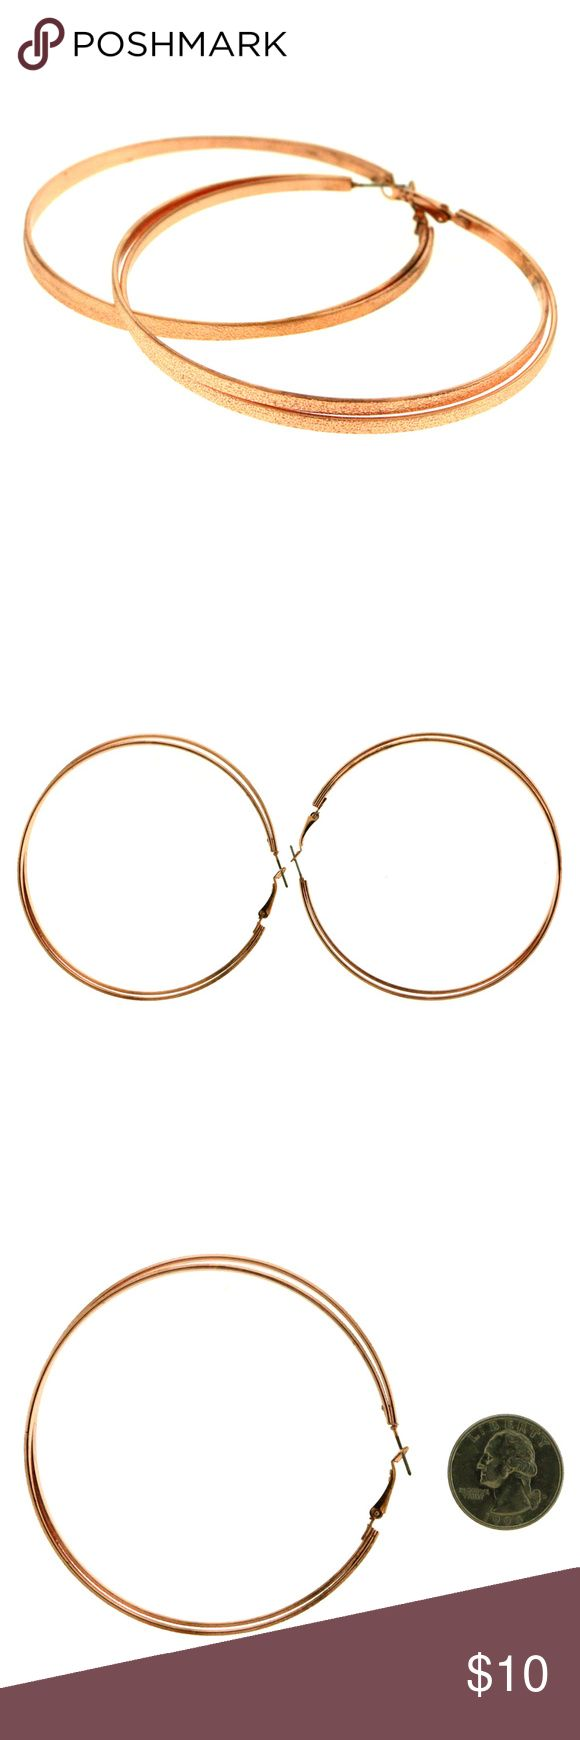 Large Rose GoldTone Double Hoop Earring For Women Large